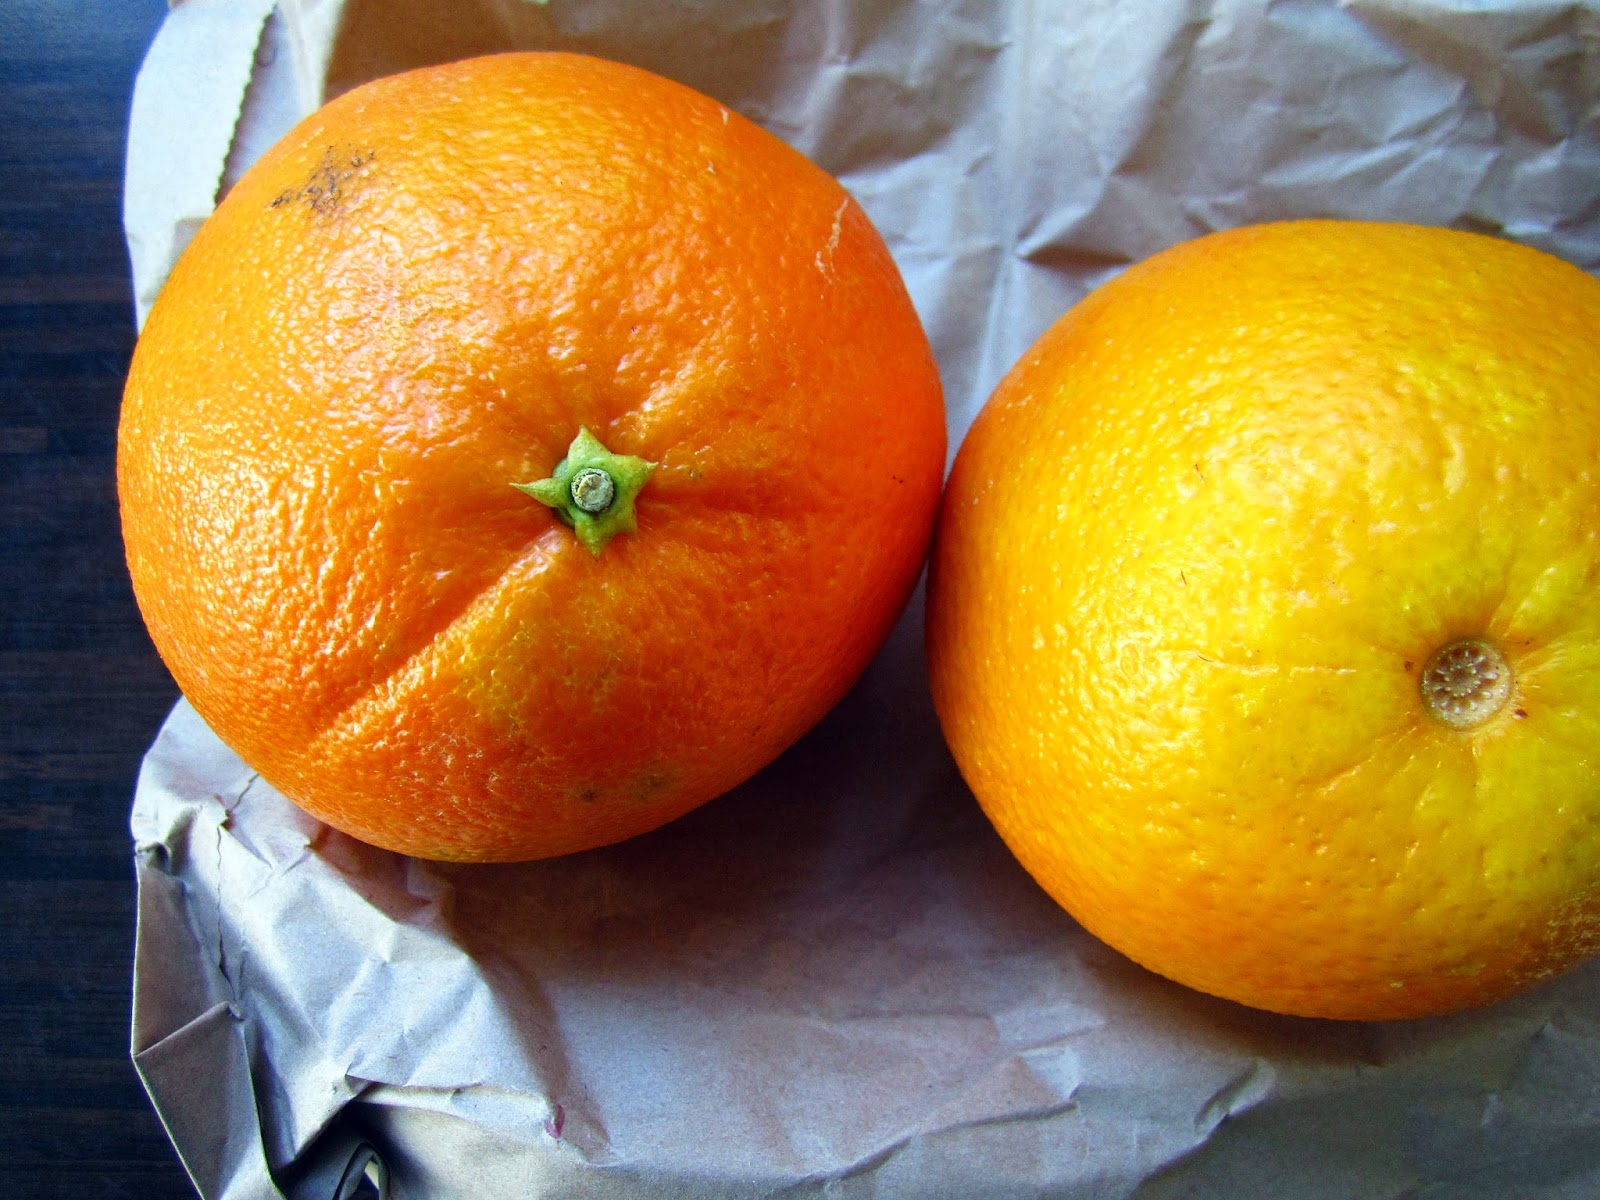 orange peel From now on, don't throw away orange peels because they have many health benefits.